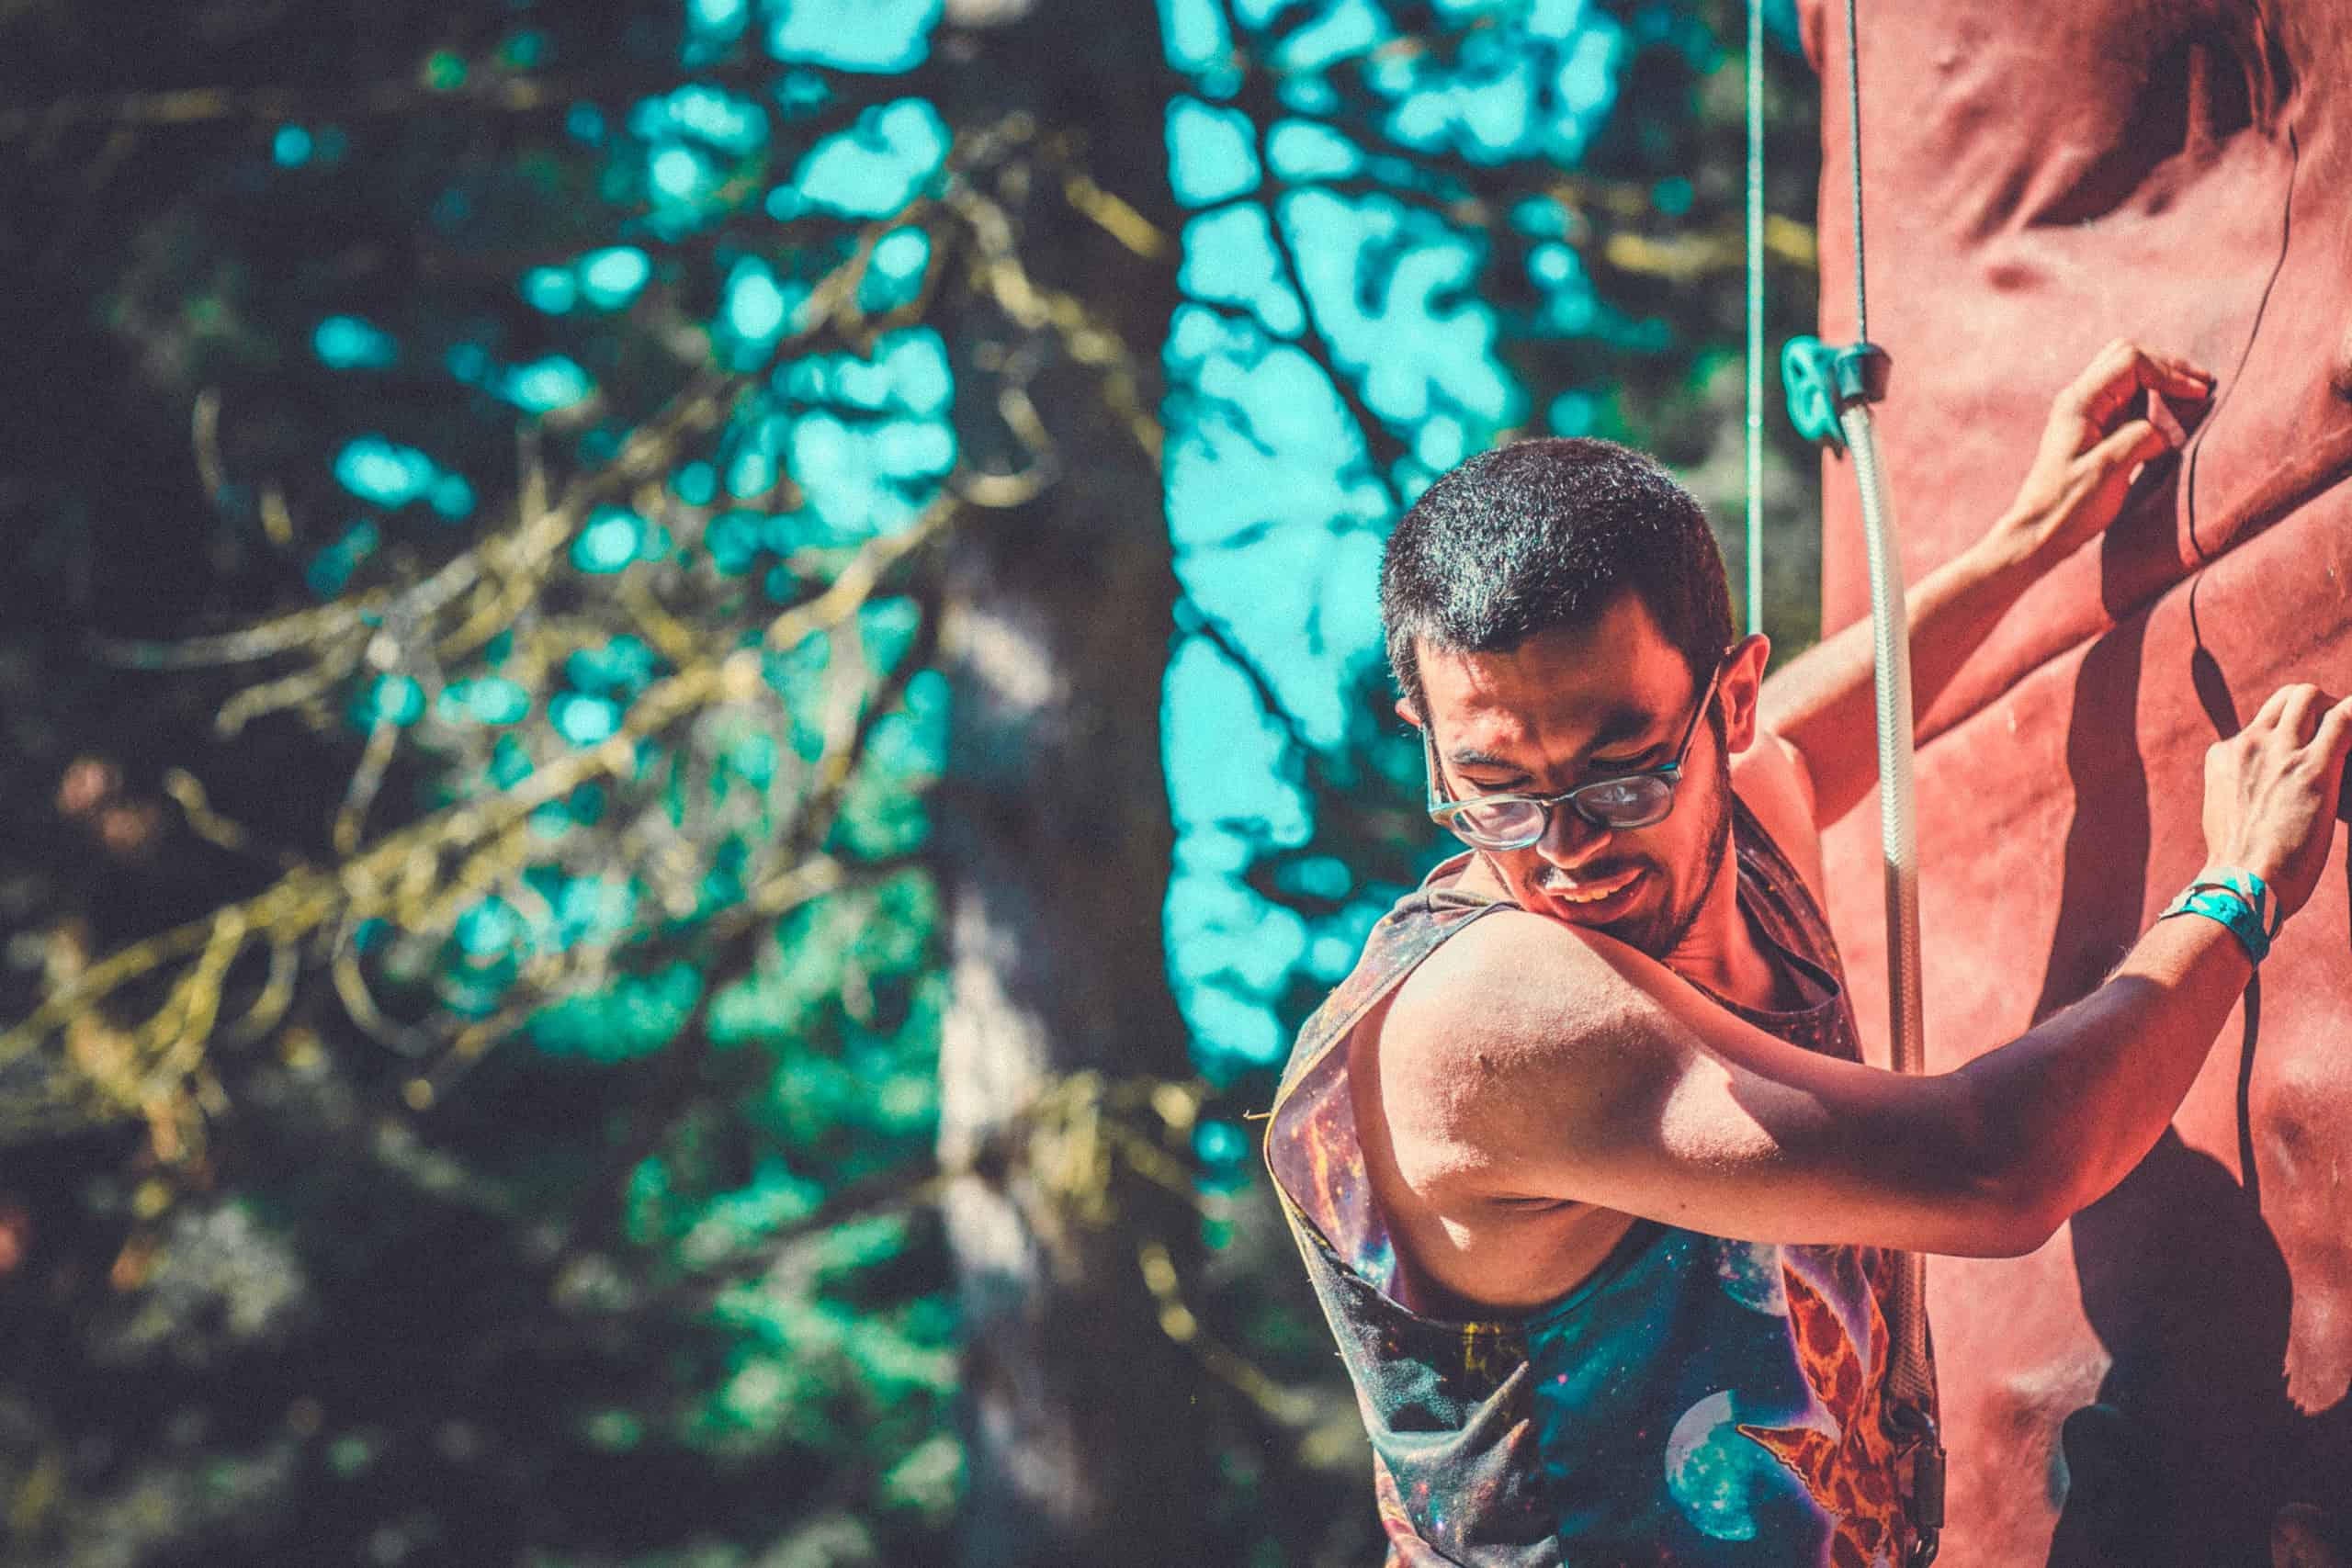 Man on climbing wall at Camp Wildfire. A summer weekend break in a forest near London and Kent. An outdoor woodland retreat featuring adventure activities, live music, DJs, parties and camping. Half summer adventure activity camp, half music festival, for adults only.